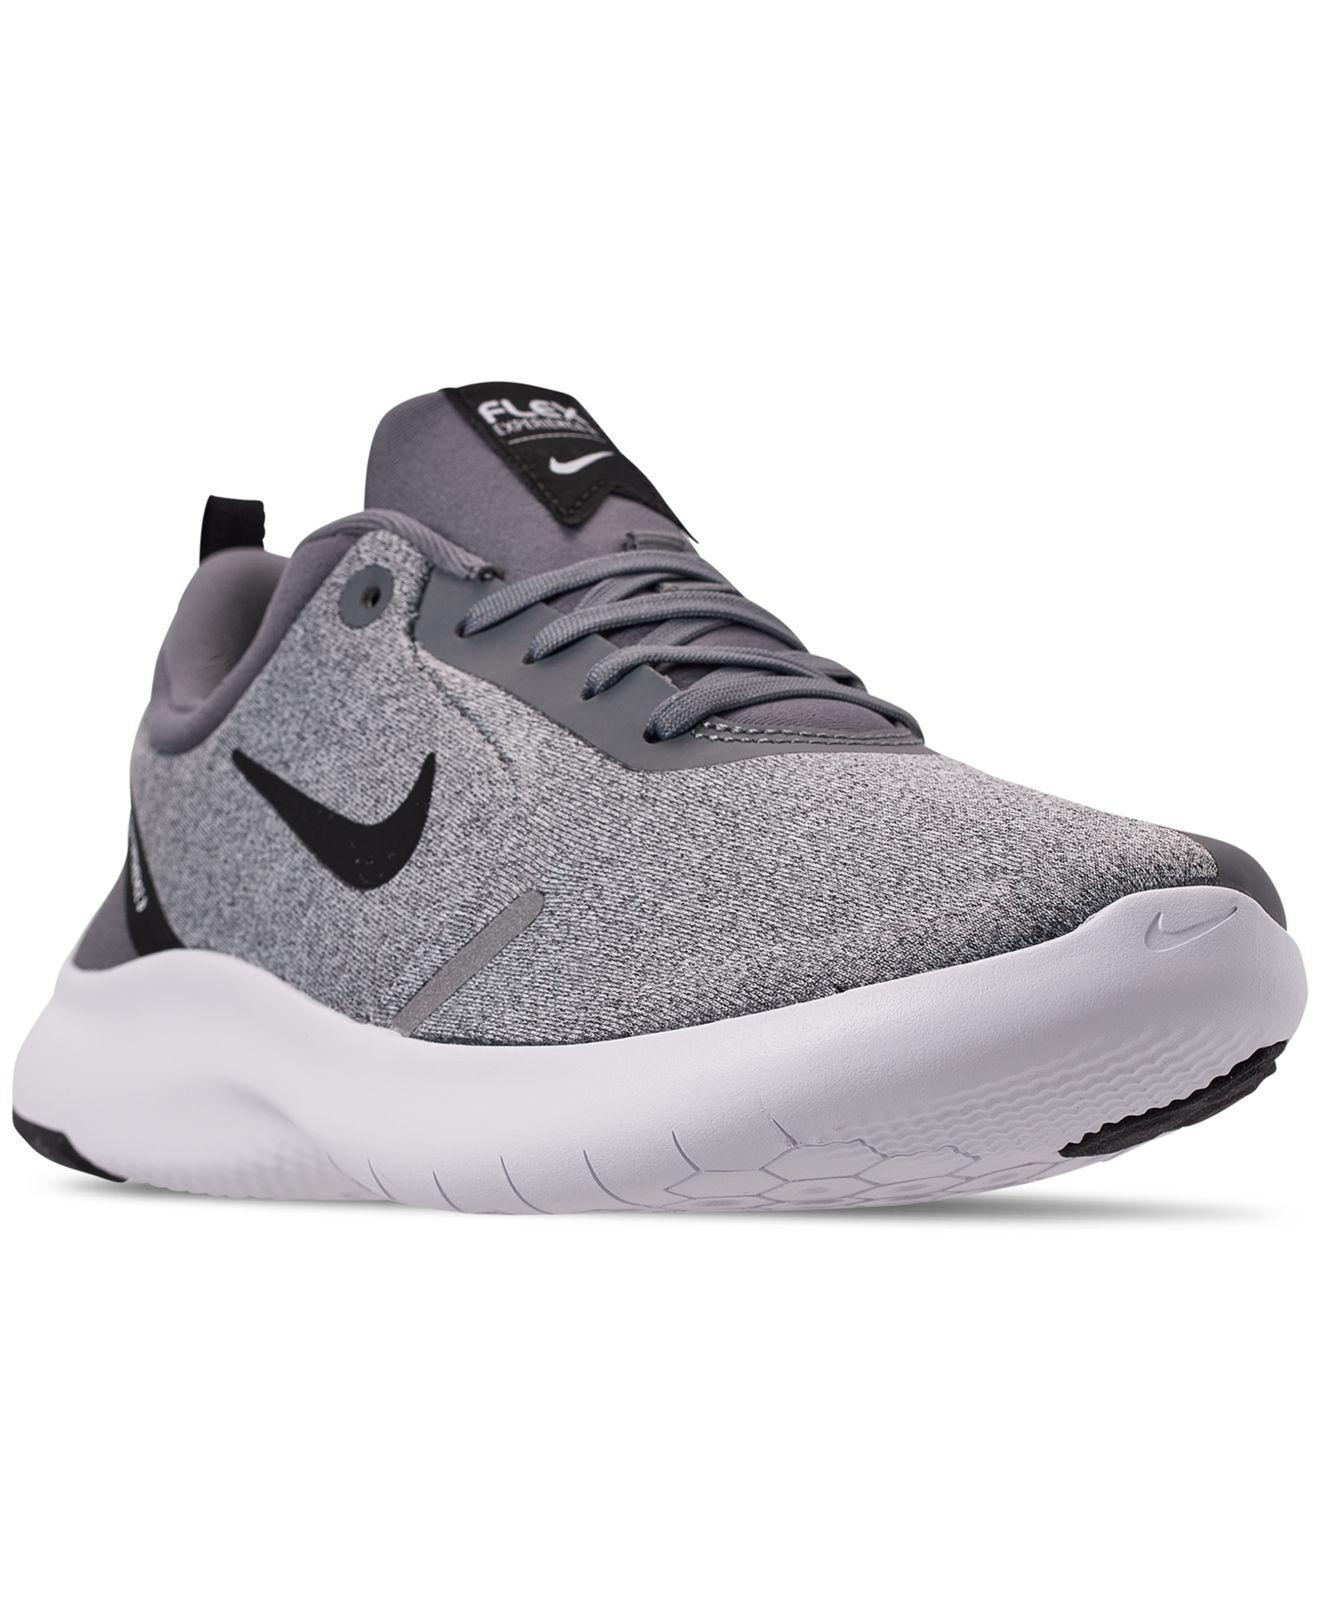 2205299d8bc5 Lyst - Nike Flex Experience Rn 8 Extra Wide Width Running Sneakers ...